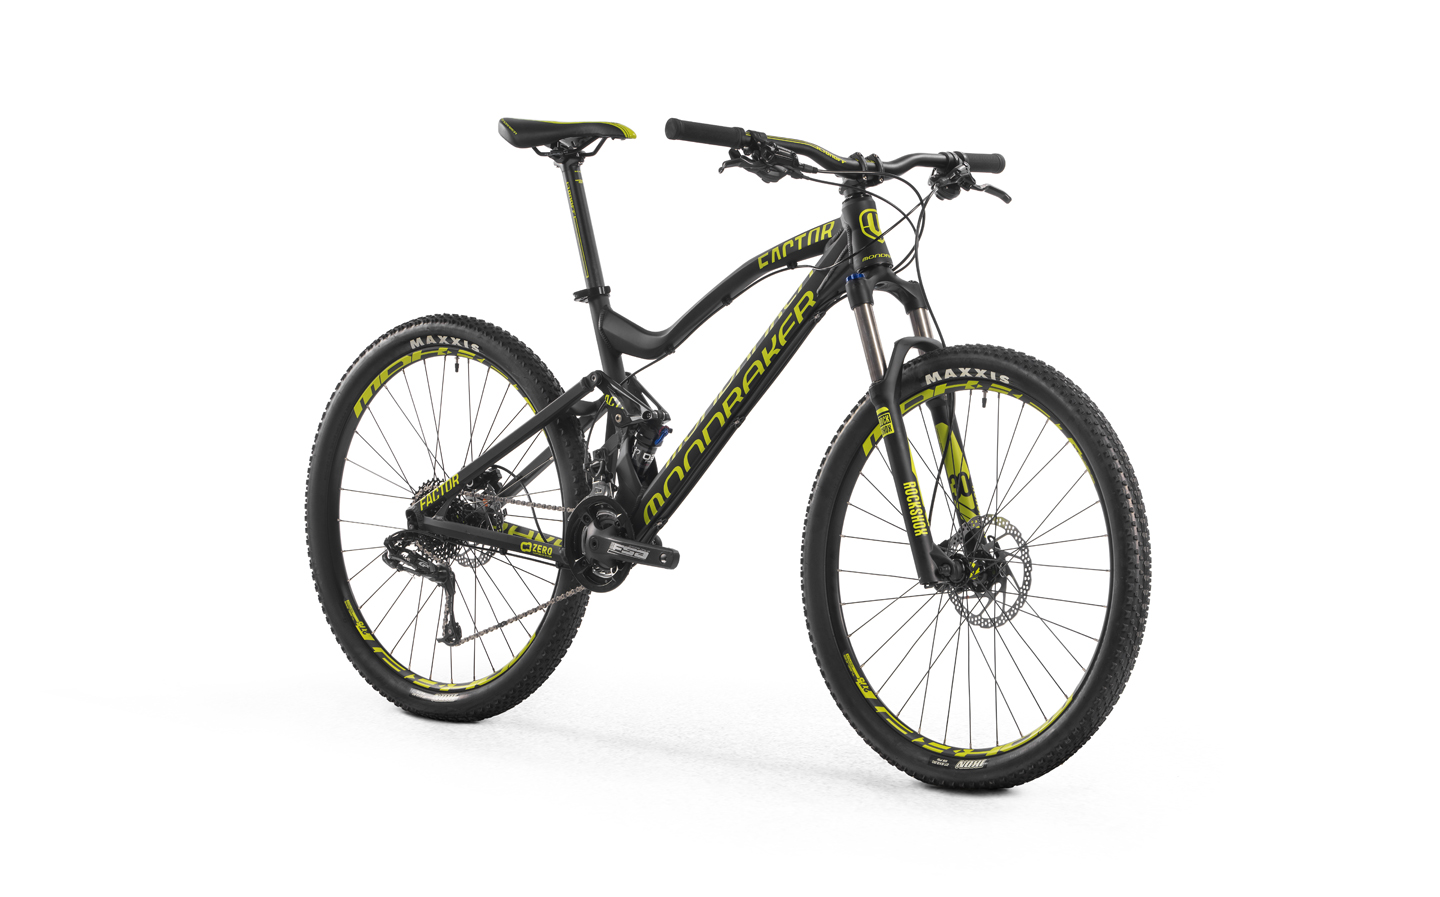 Mondraker Factor Alloy 27 5 120mm Xc Trail Mountain